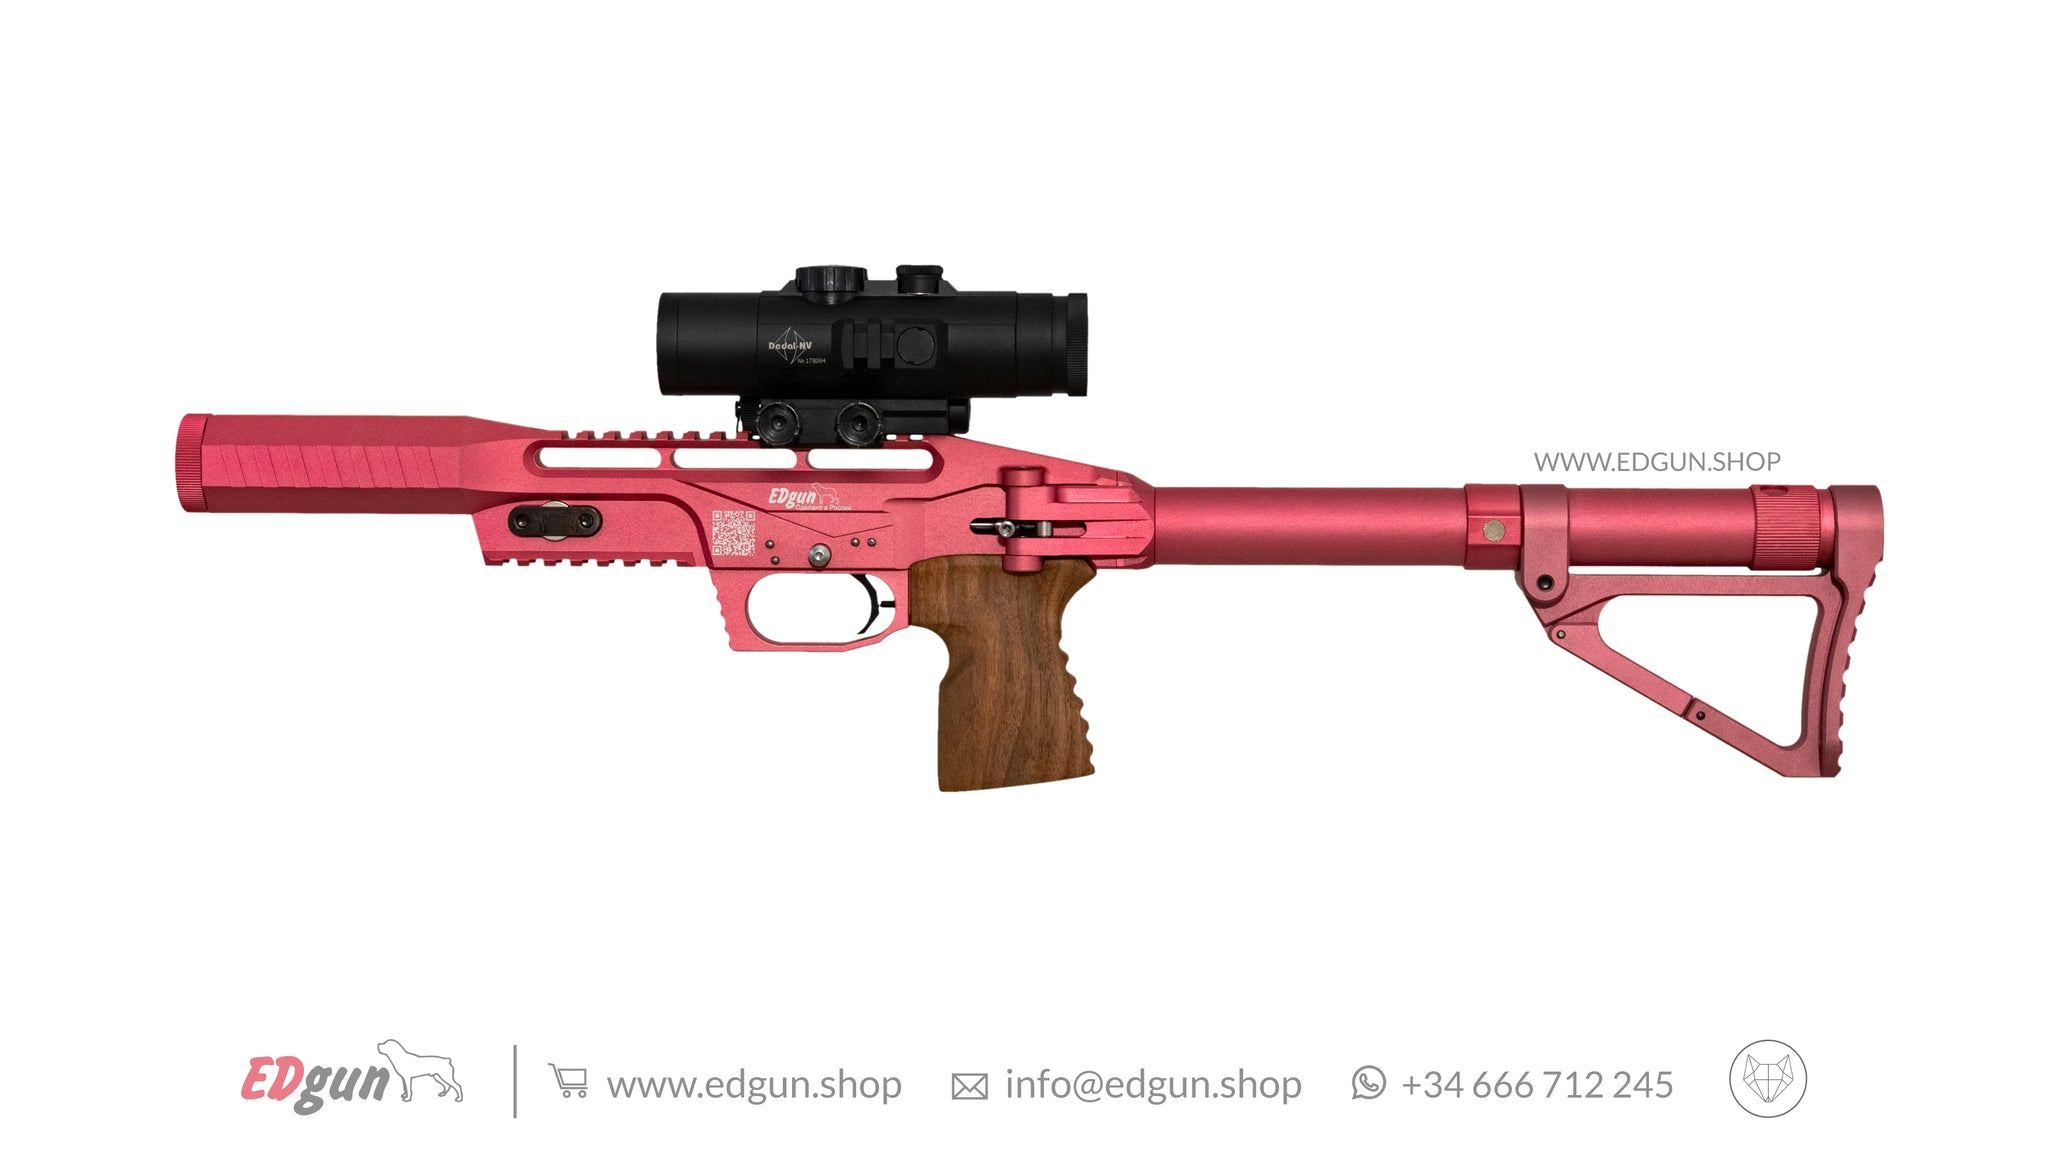 EDgun Leshiy <br>Special Edition: Pink